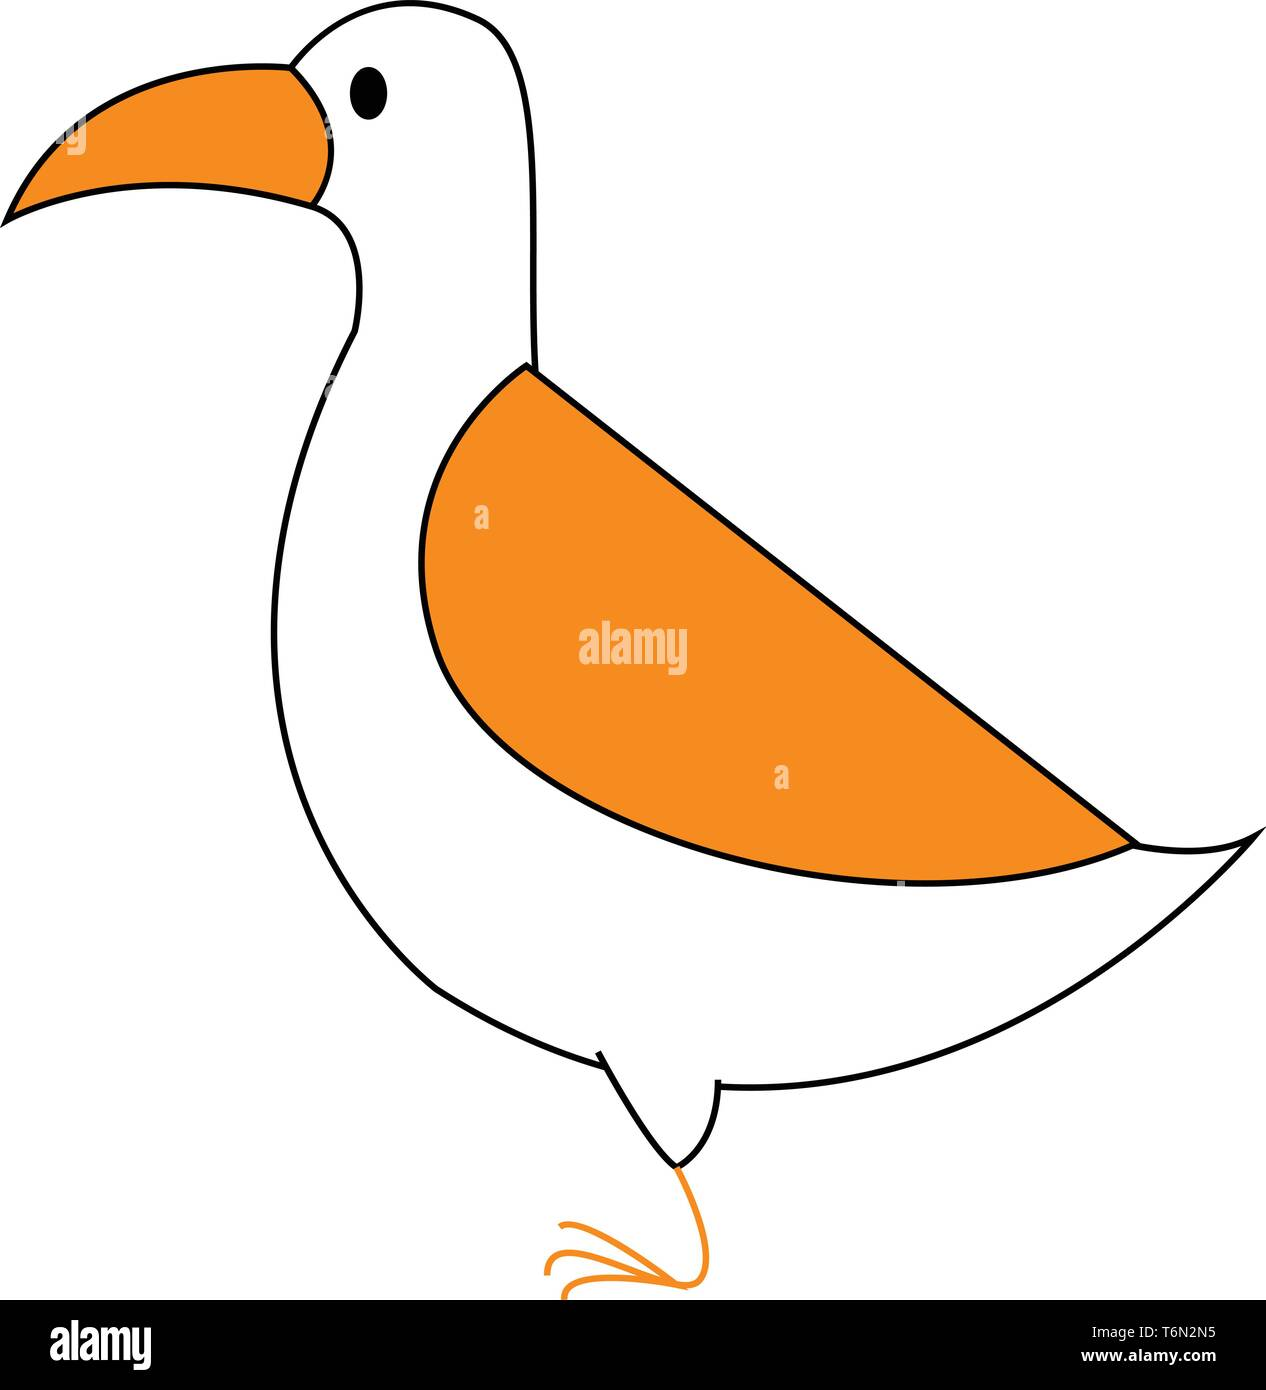 Clipart of a white-colored bird with orange  plumage  and beak  stands in its one slender orange foot  vector  color drawing or illustration - Stock Image